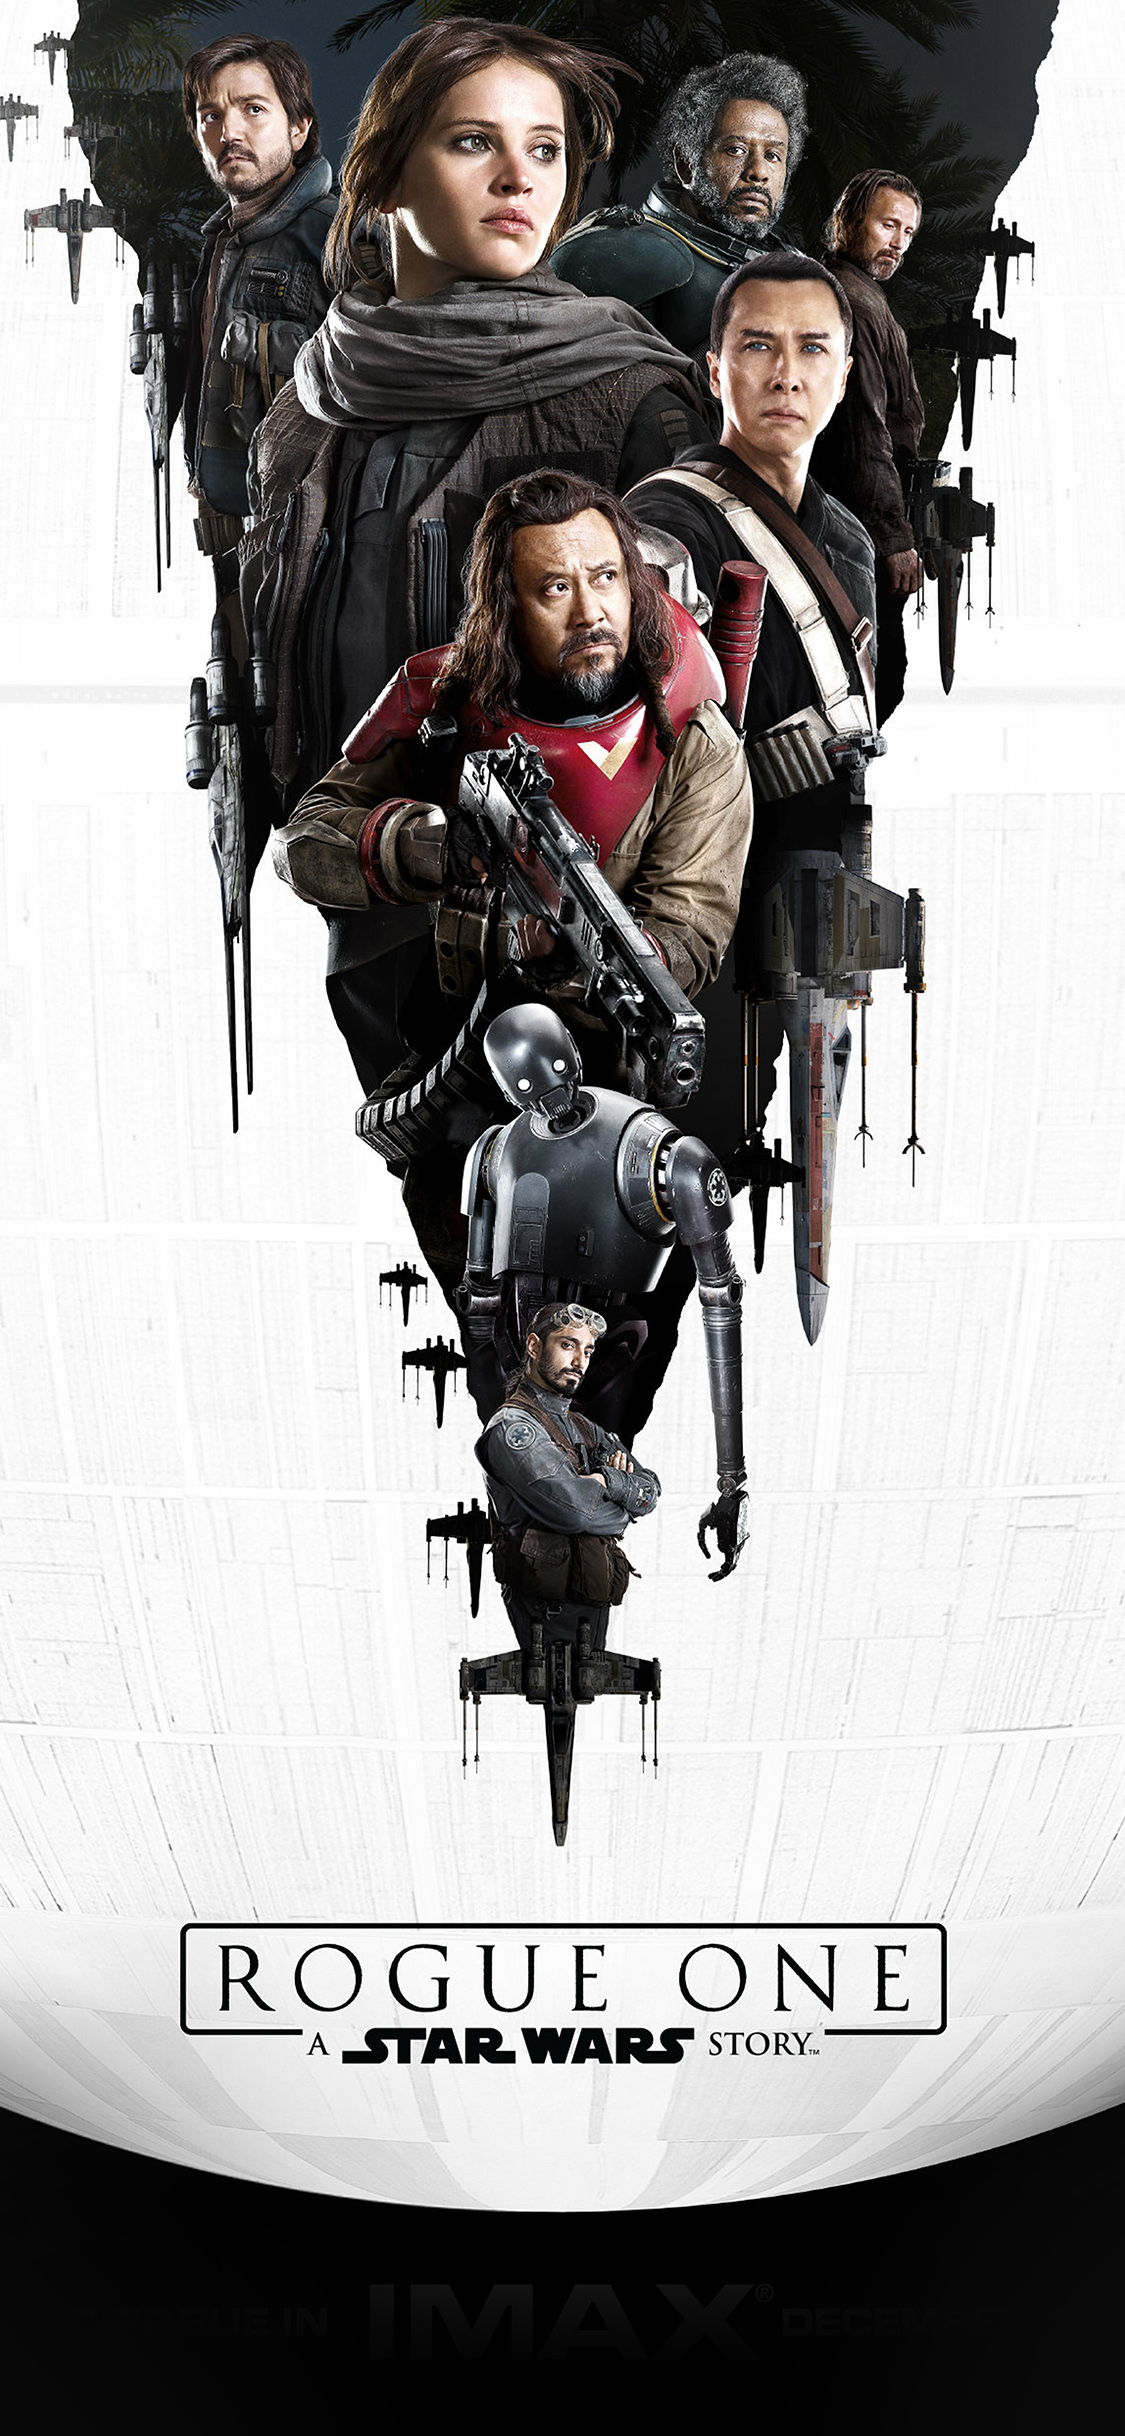 Aw01 Film Rogue One Starwars Poster Illustration Art Wallpaper